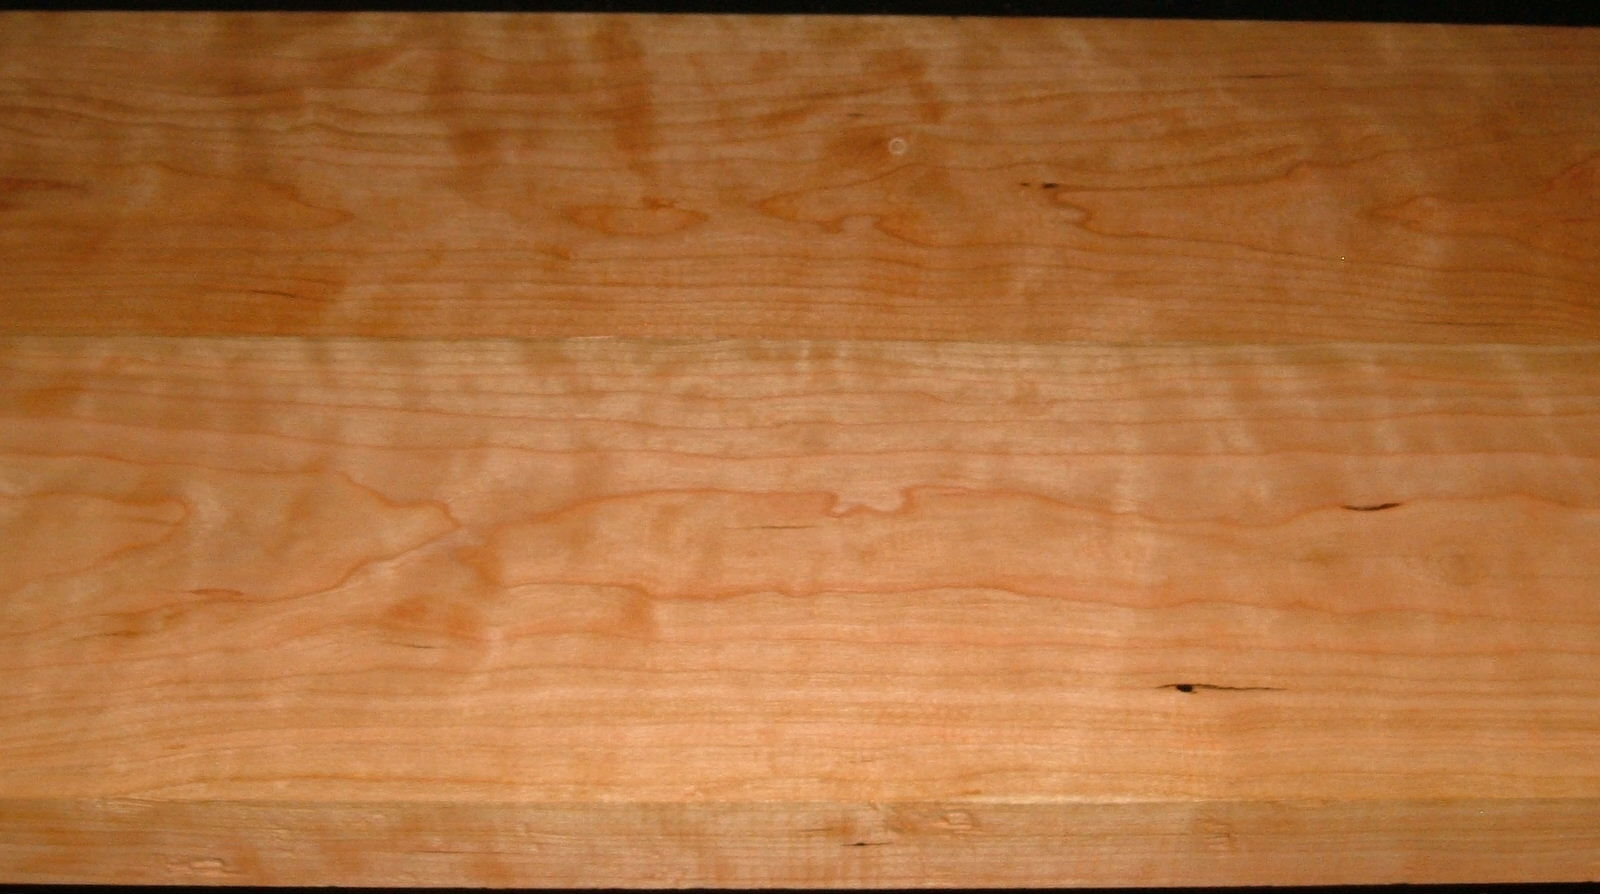 C2004-68,1-3/8x7x42, 1-5/16x7-1/2x42 , Curly Figured Cherry, (cut from same plank)